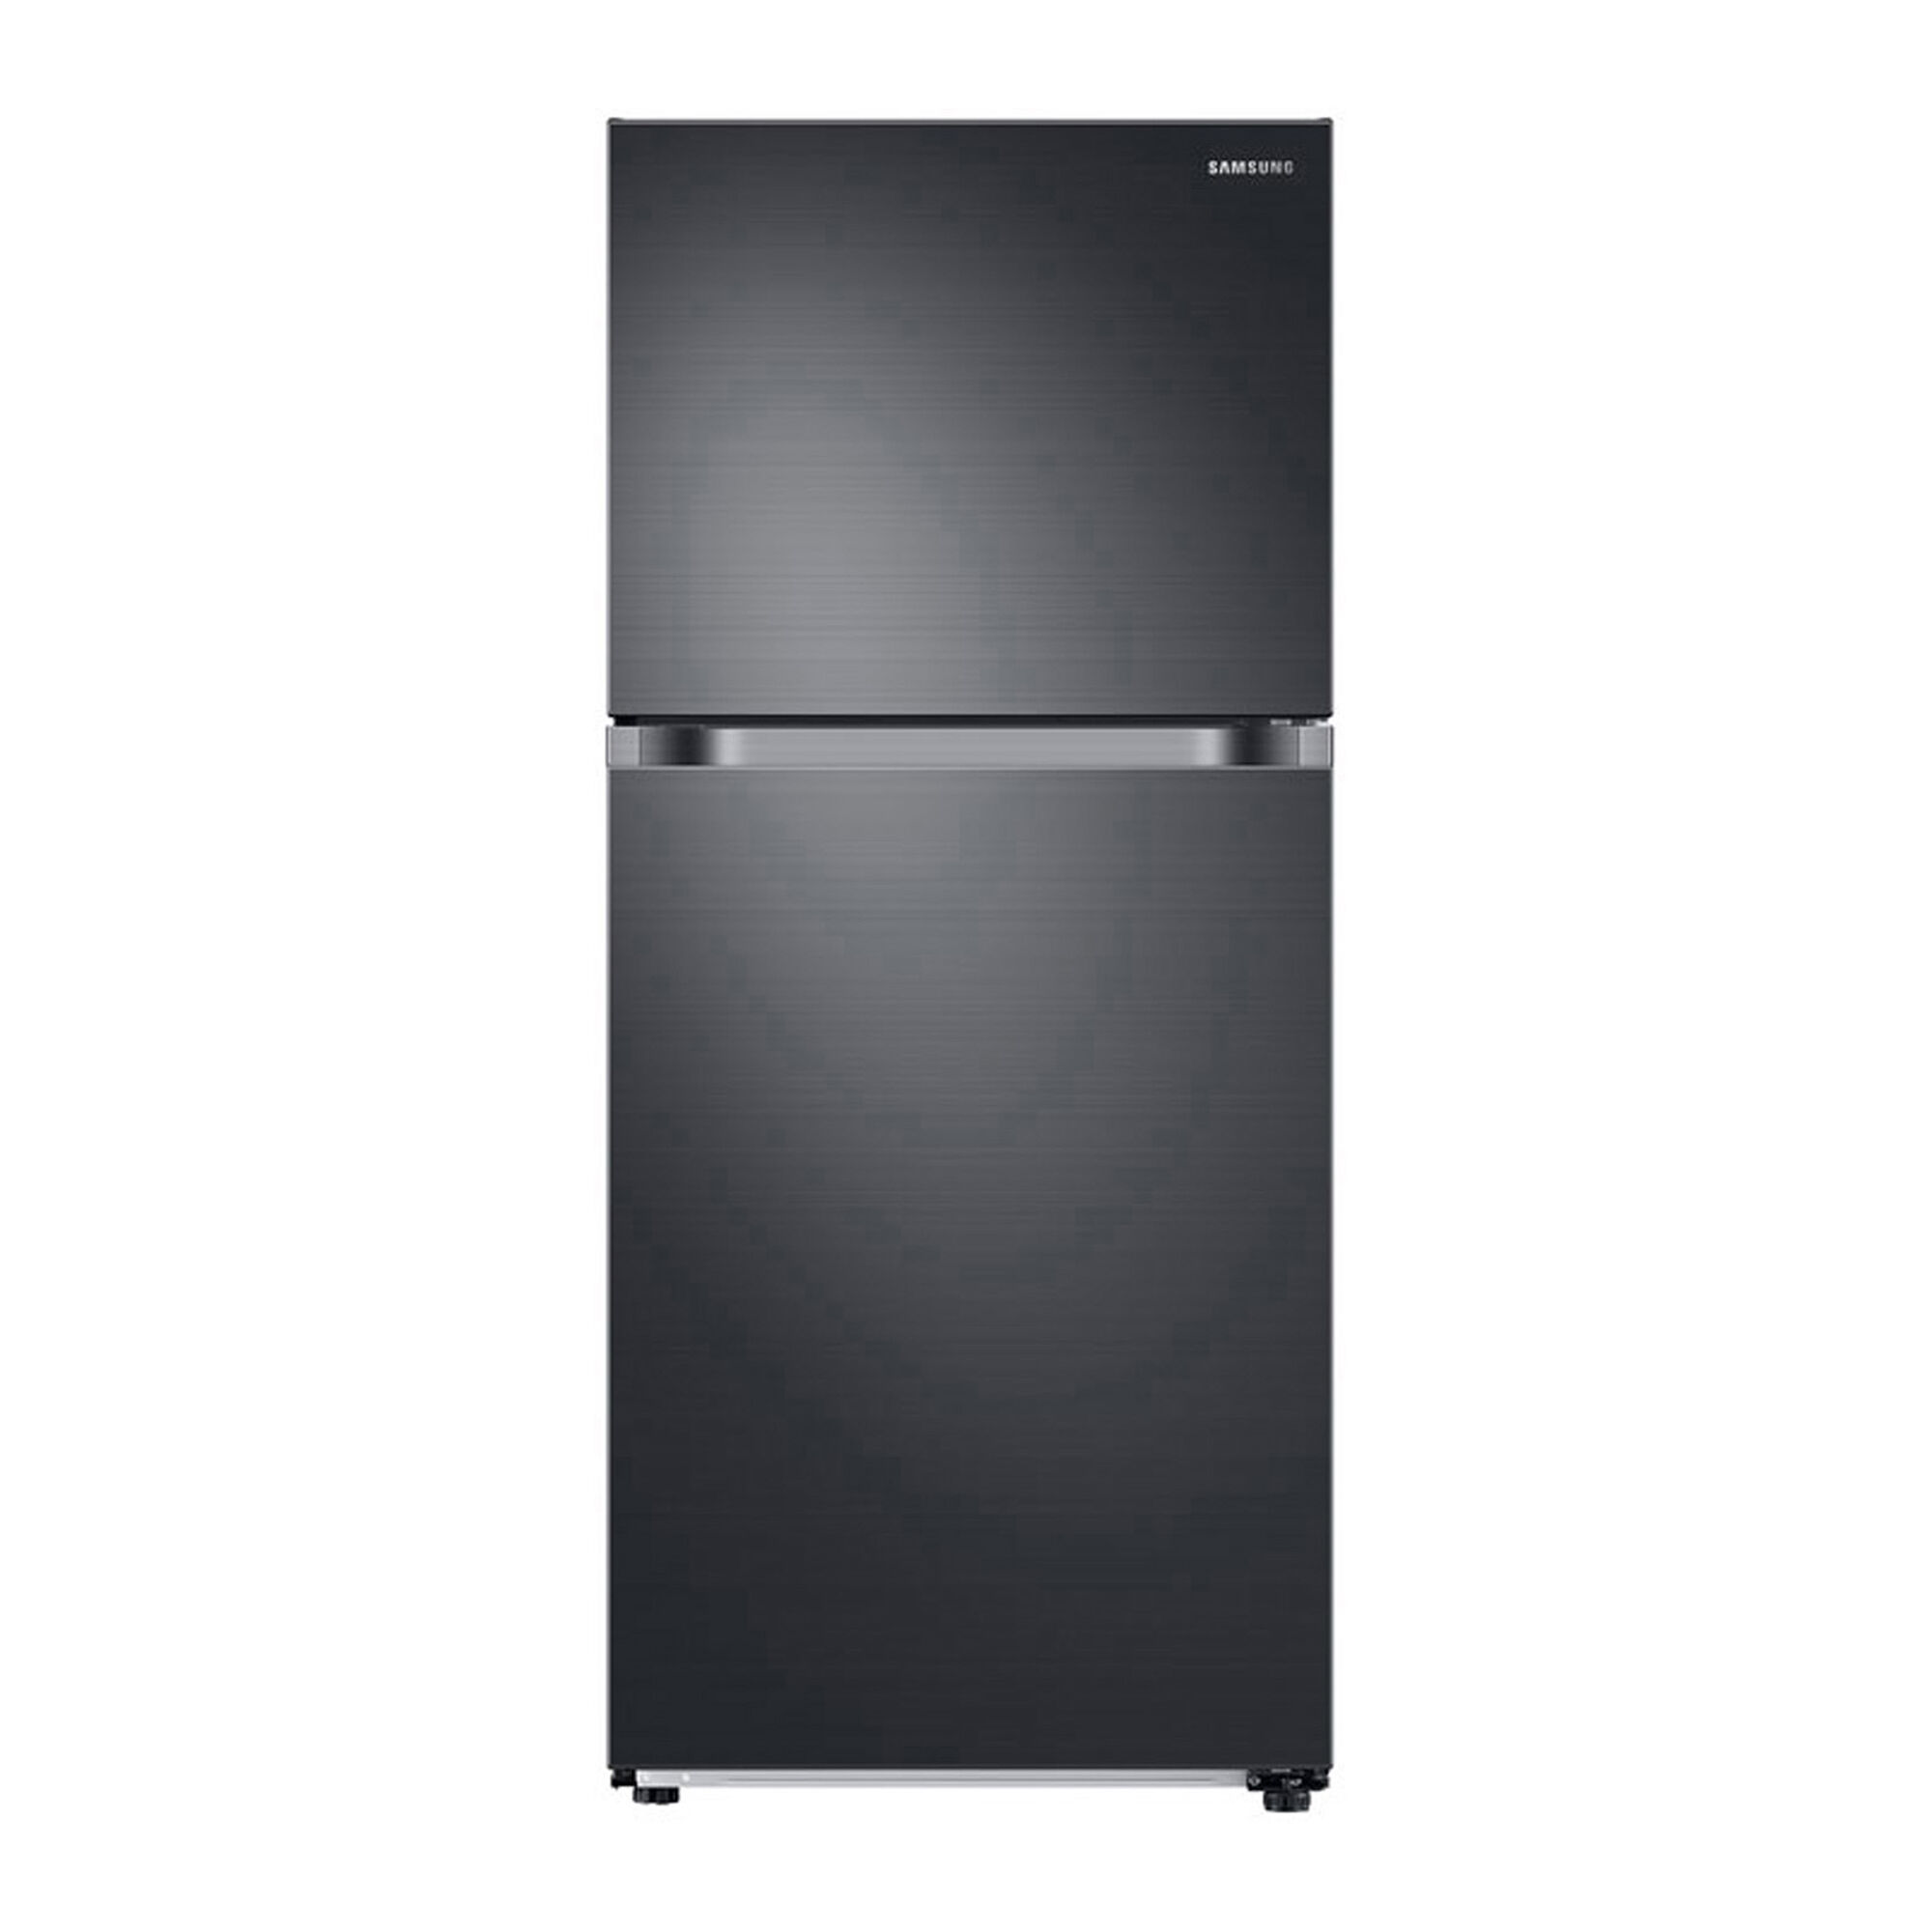 Top Freezer Refrigerator   Black Stainless Steel